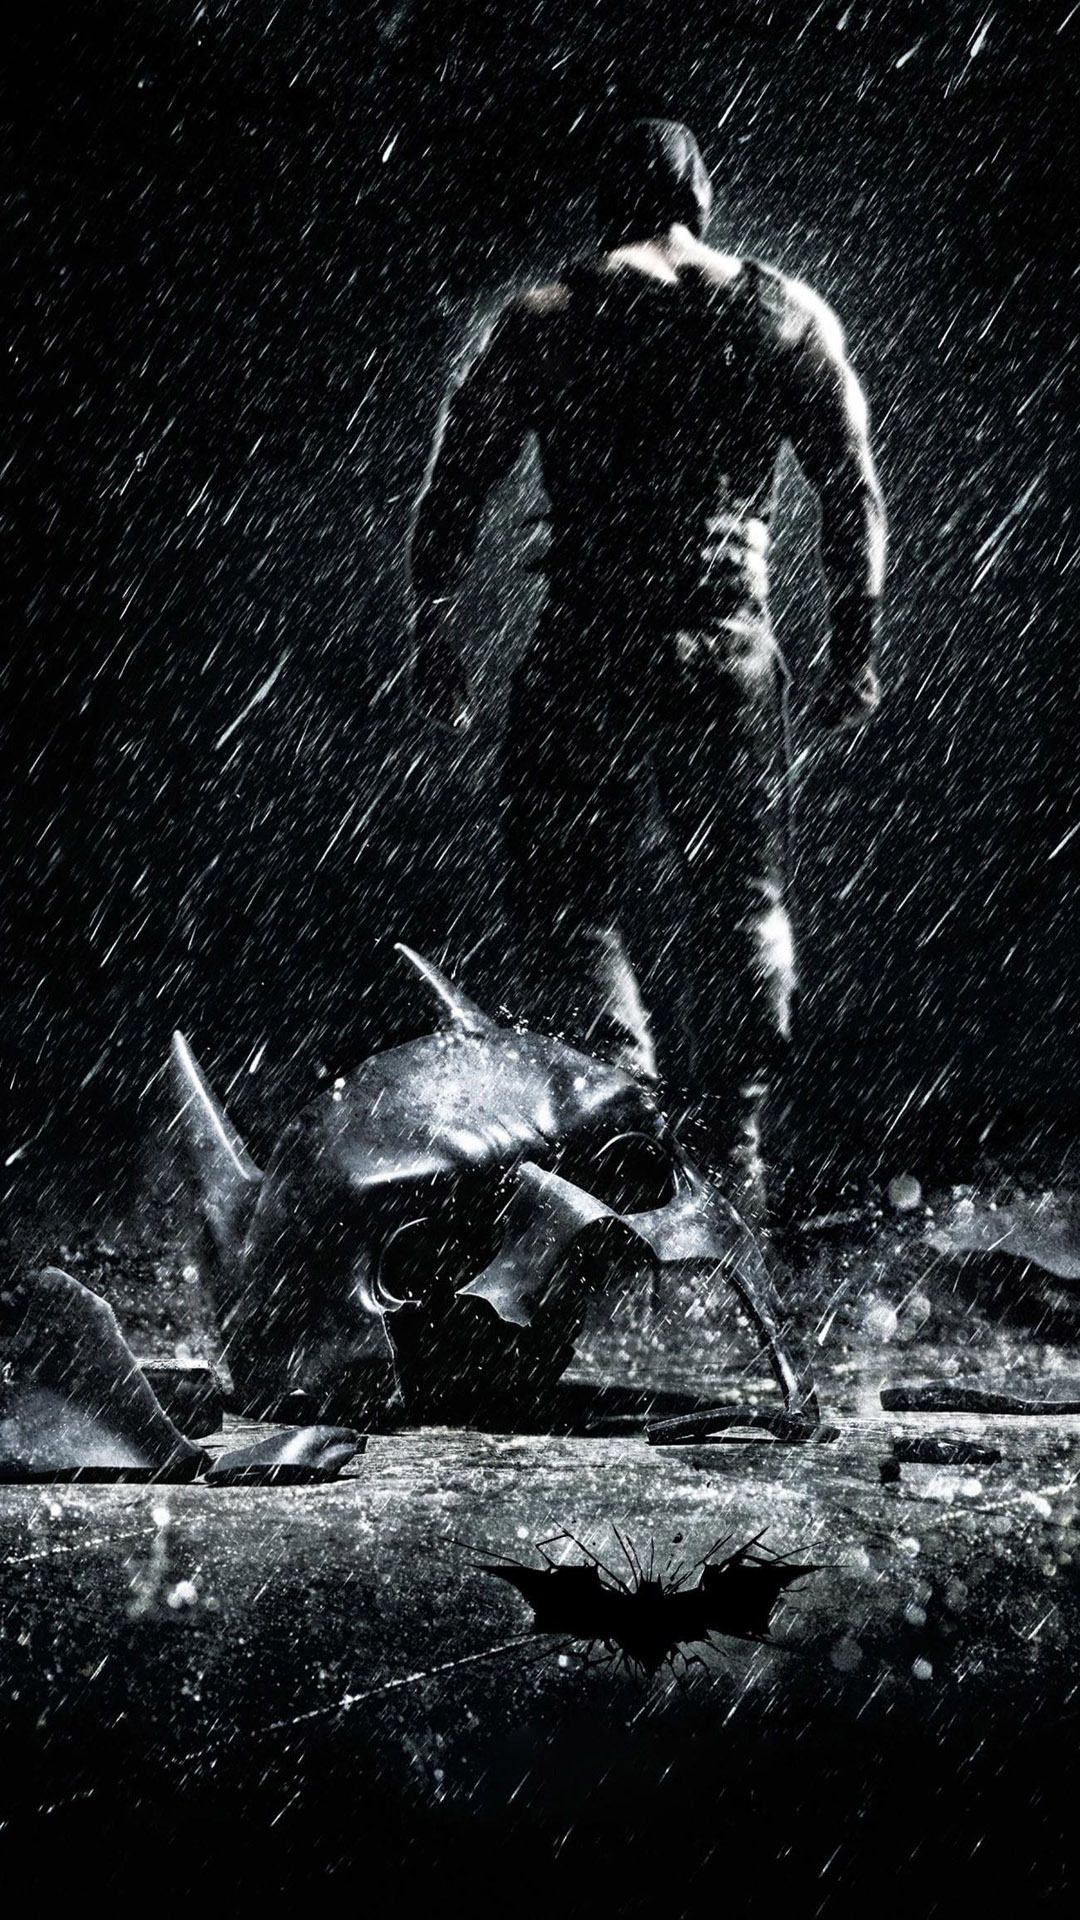 Bane the dark knight rises mobile wallpaper 12804 dc - Bane wallpaper ...